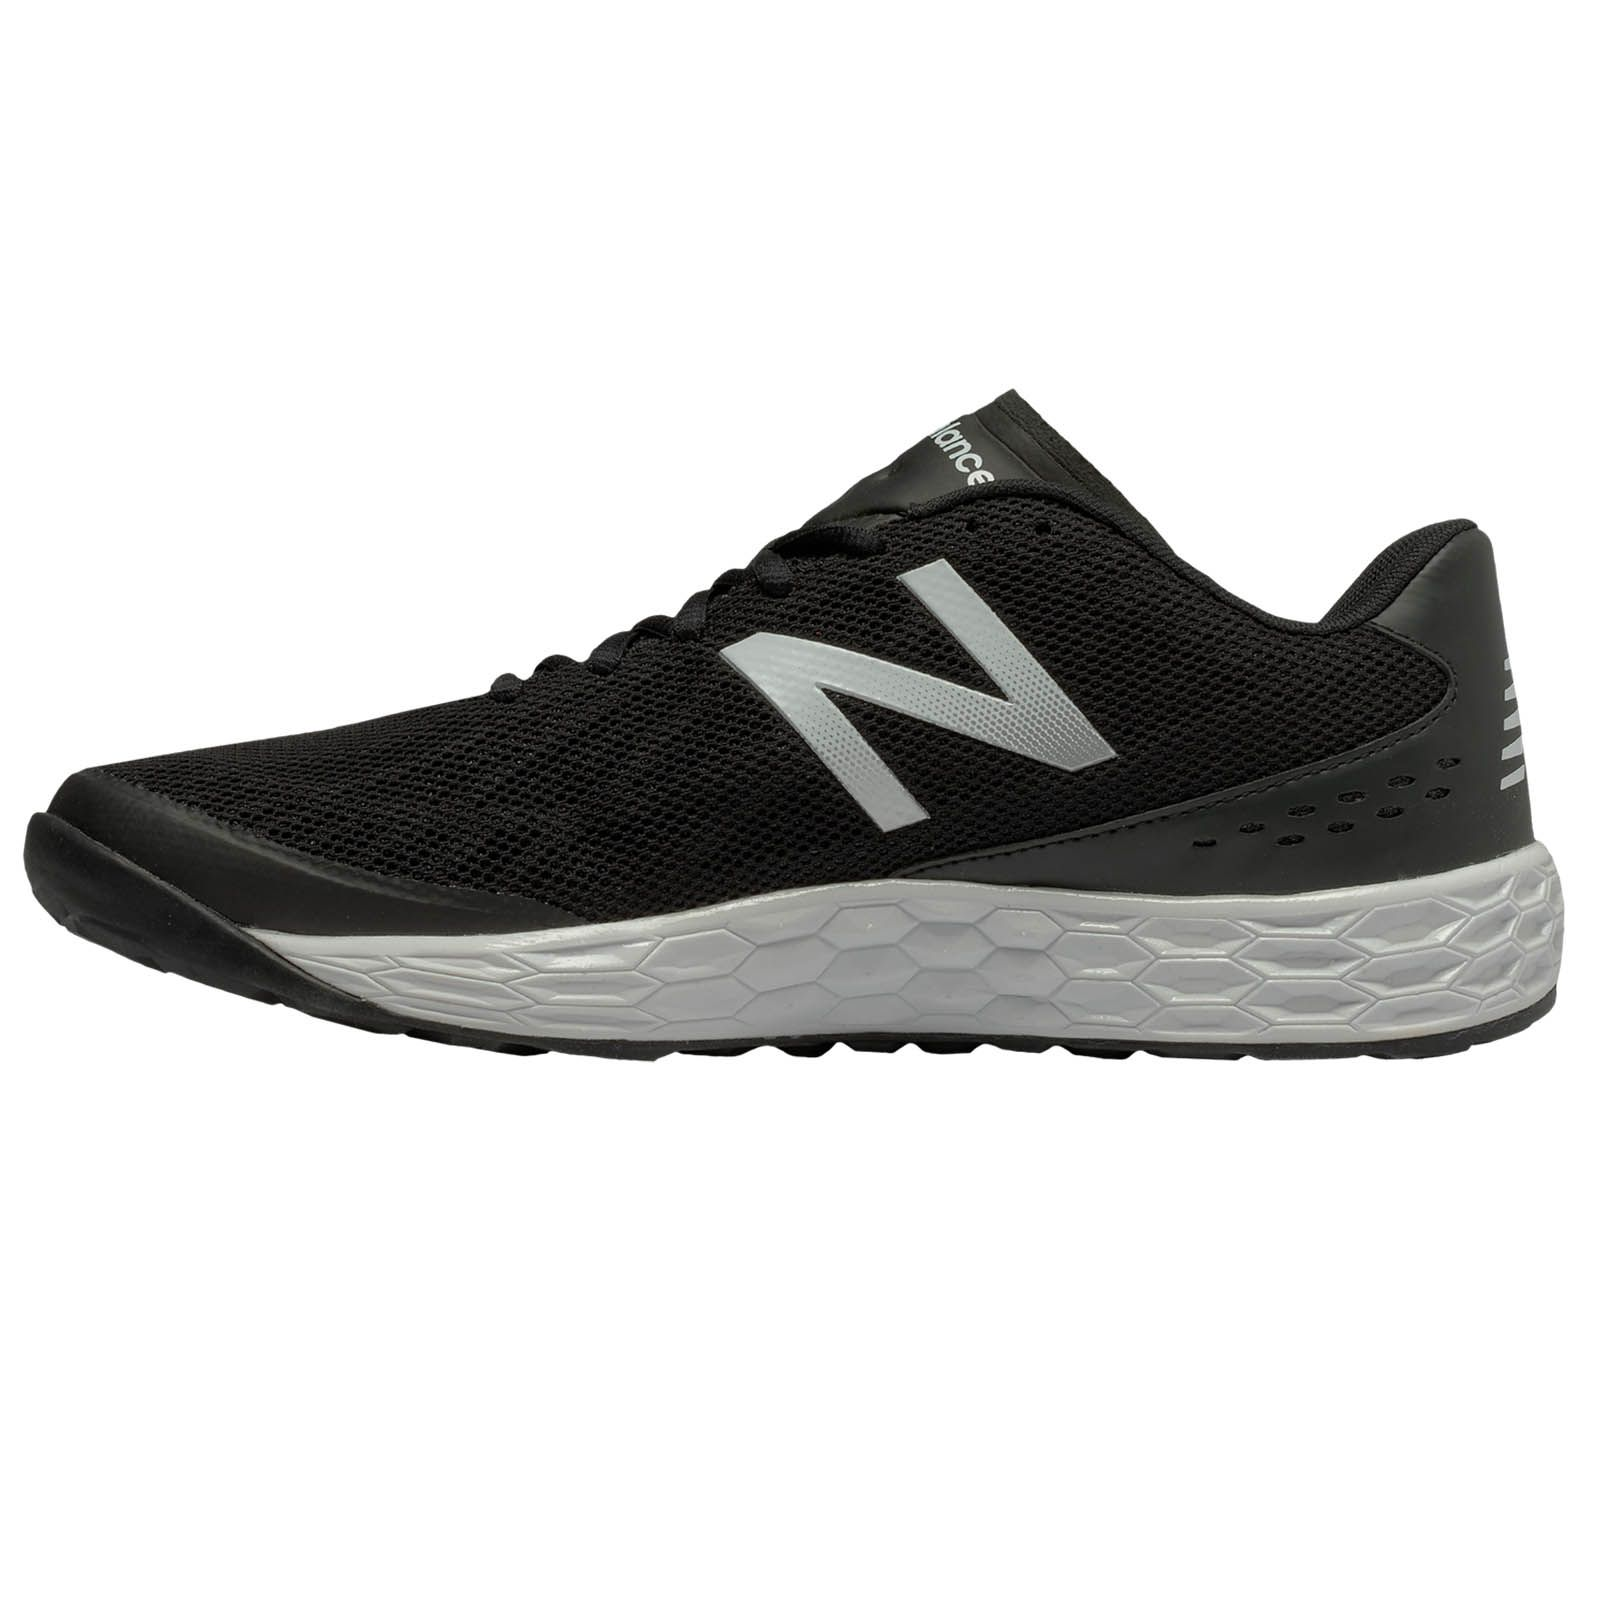 new balance mx80 v3 mens running shoes